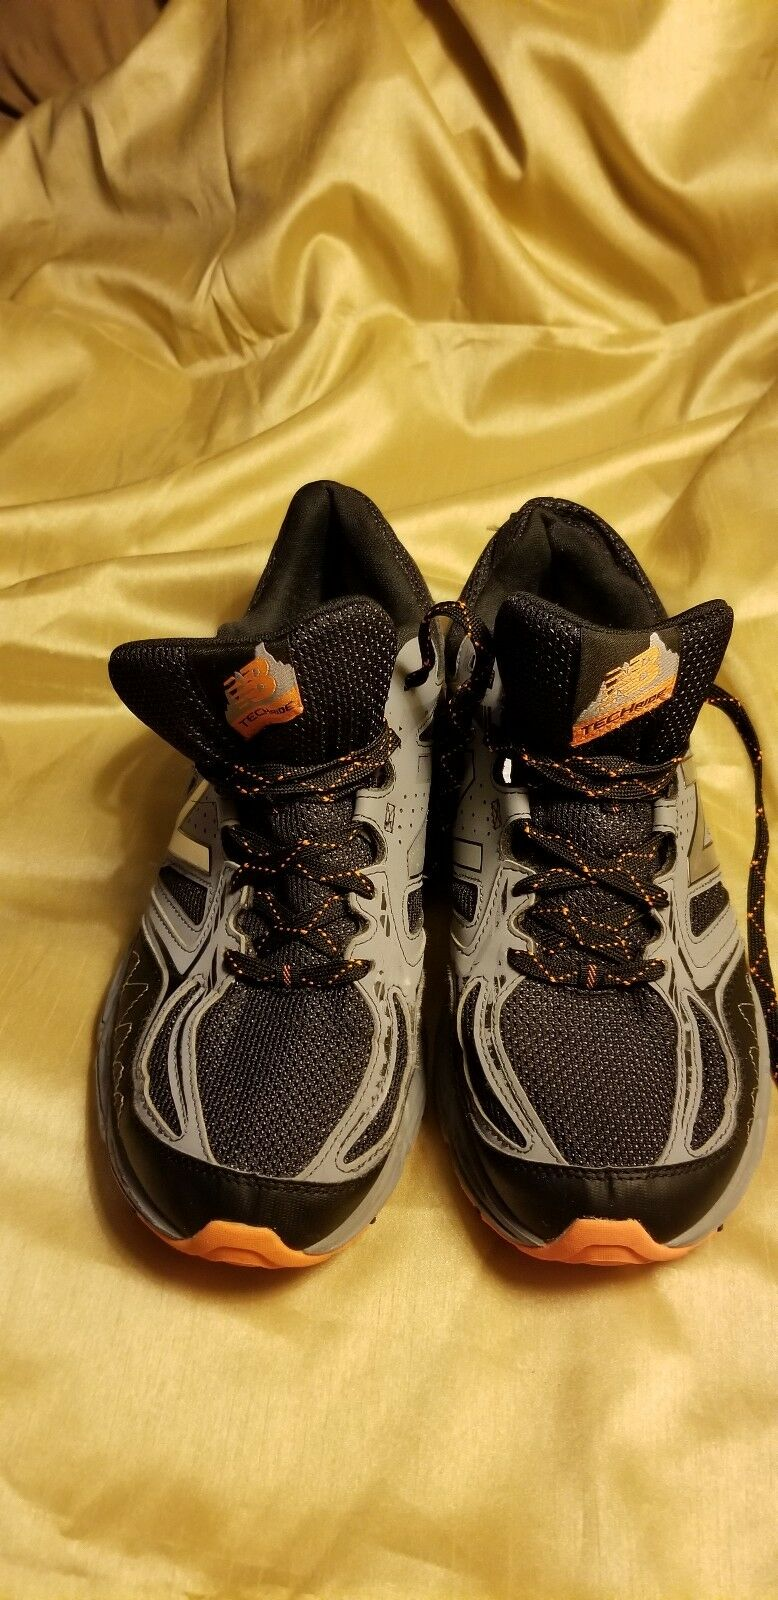 New balance 510v3 trail Run Walk Cleaned No Insoles Use Old Ones